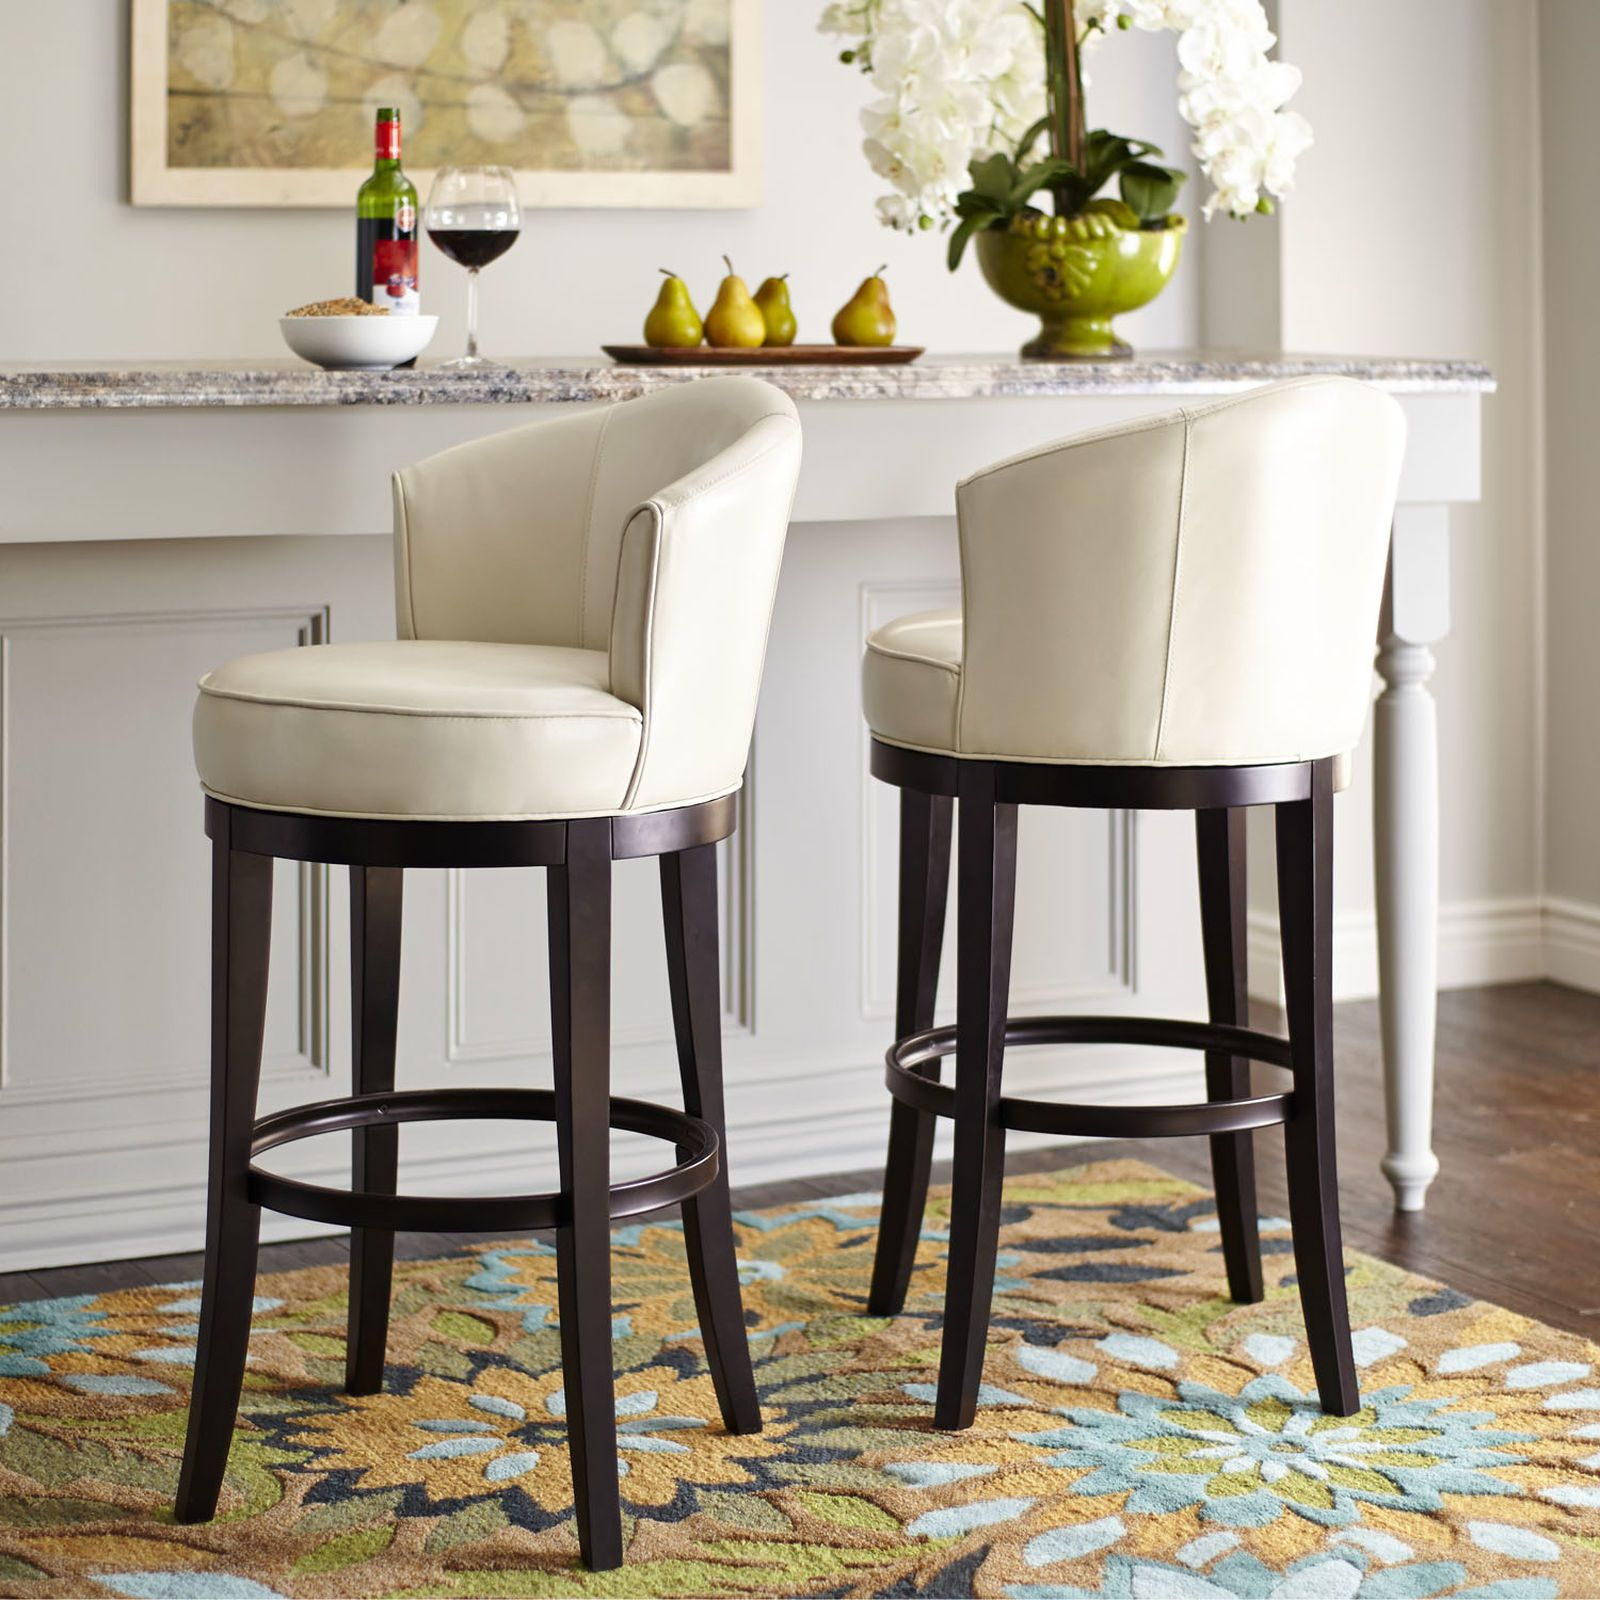 Isaac Ivory Swivel Bar Stool & Isaac Ivory Swivel Bar Stool | Spin Retro and Rounding islam-shia.org